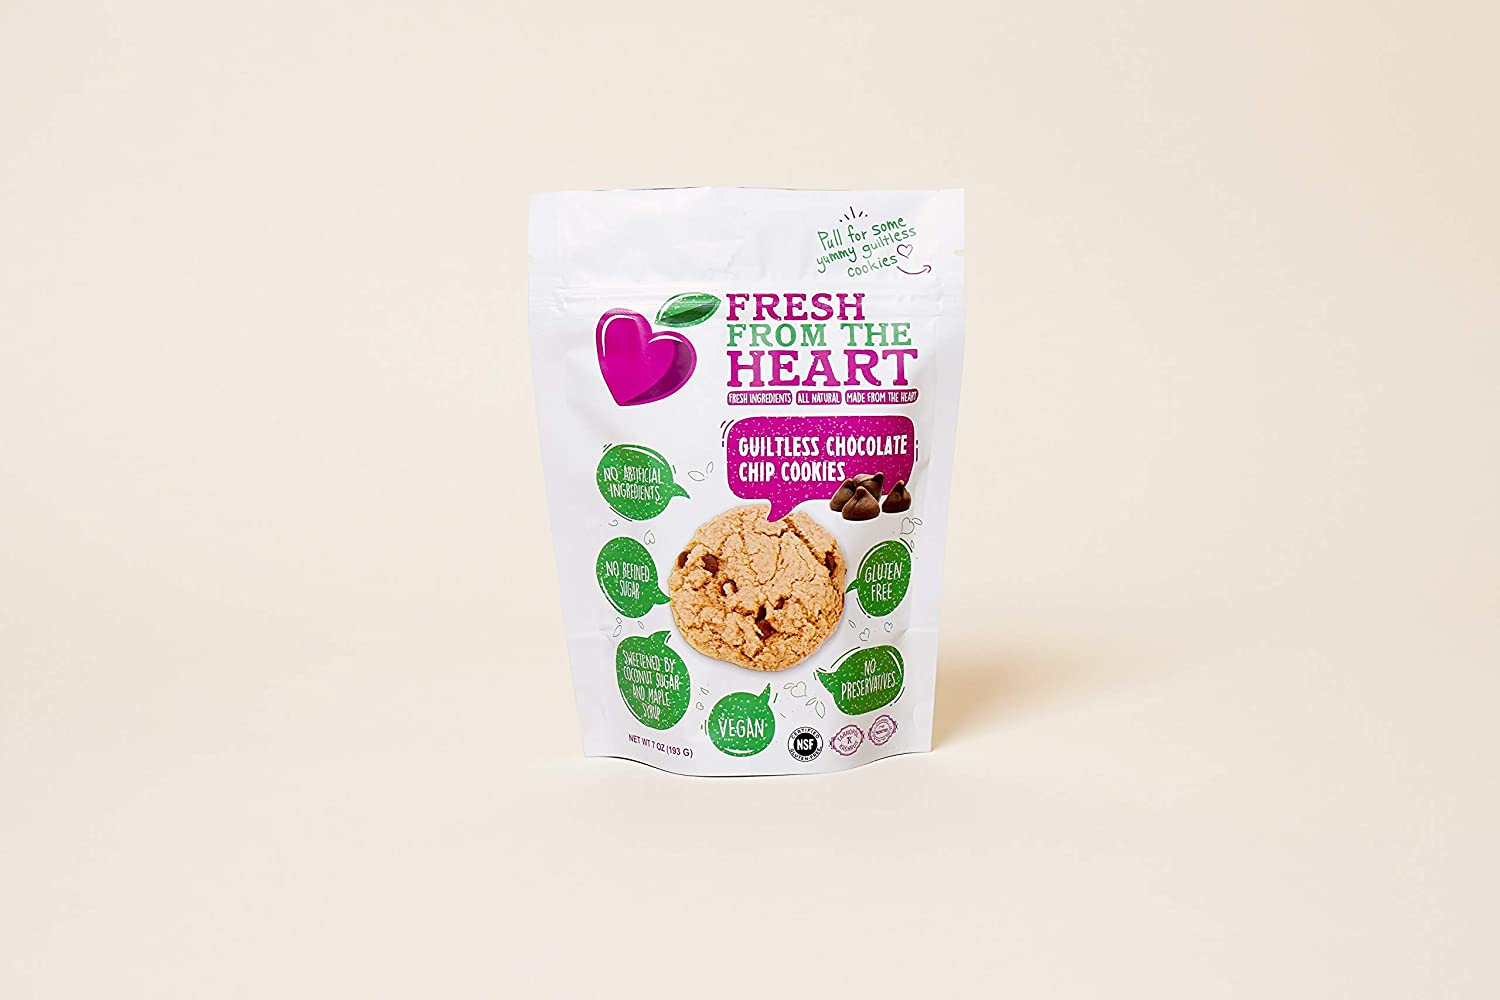 Fresh From the Heart Healthy Cookies, 100% Vegan and Gluten-Free, Non-GMO, Only Wholesome and Plant-Based Ingredients, Guiltless Chocolate Chip Cookie Snack Bag (Pack of 14)